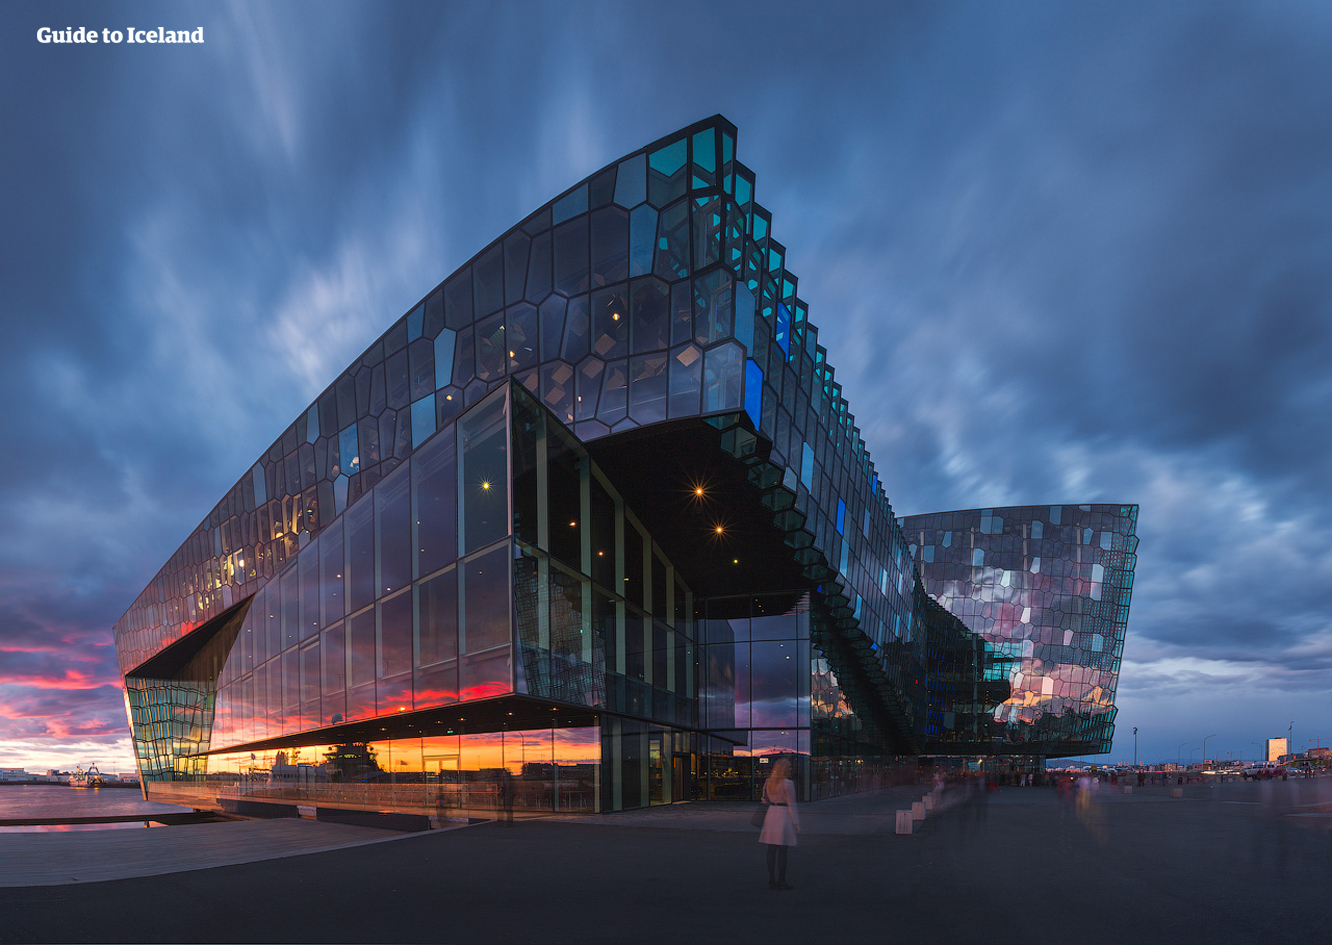 Harpa Concert Hall which sits on the shores of Reykjavik Harbour, photographed at sunset.